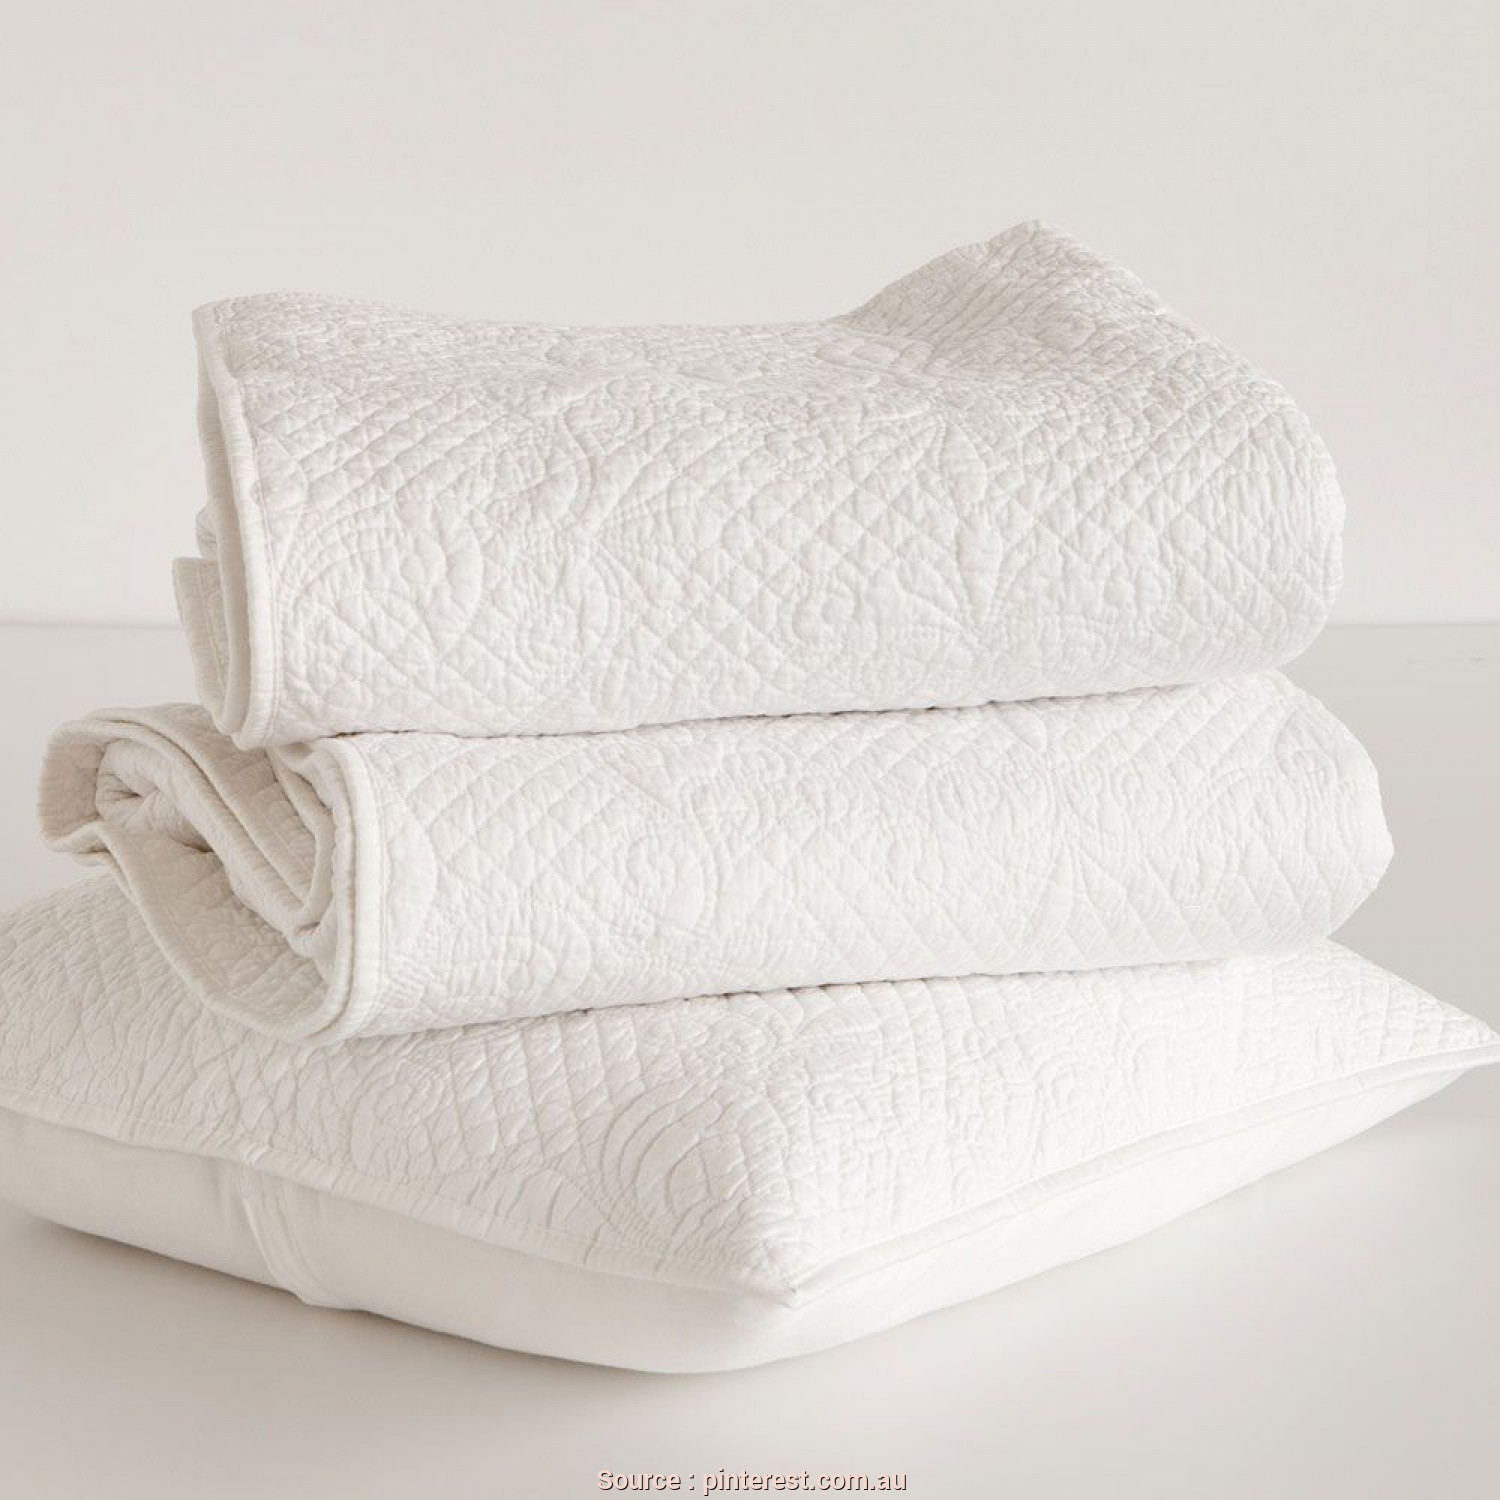 Cuscino Emmie Rund Ikea, A Buon Mercato Raised Damask Design Decorative Quilt, Cushion Cover, ZARA HOME Deutschland